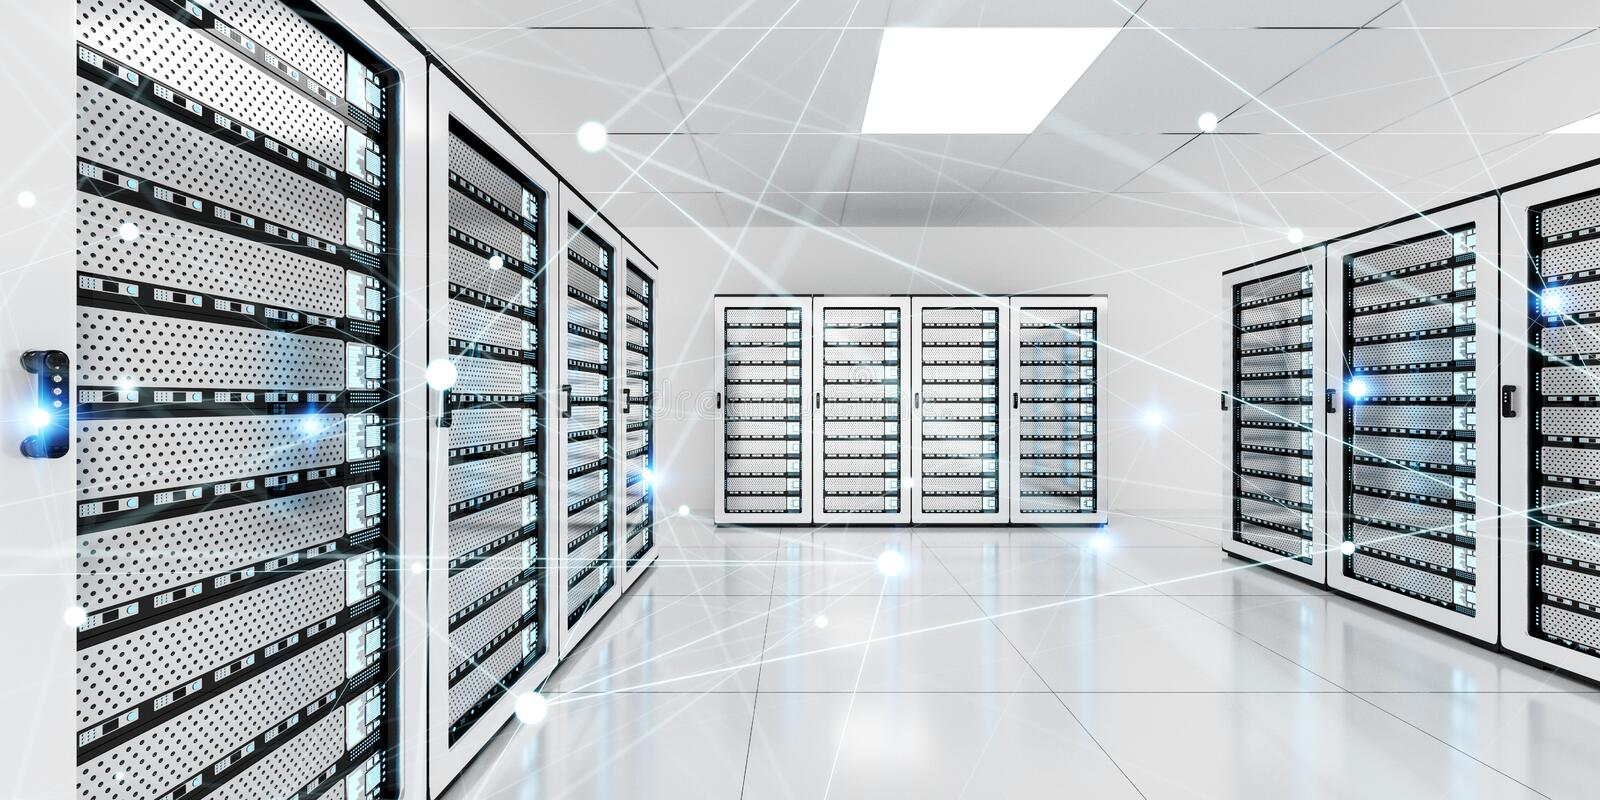 Abstract network on server room data center 3D rendering royalty free illustration